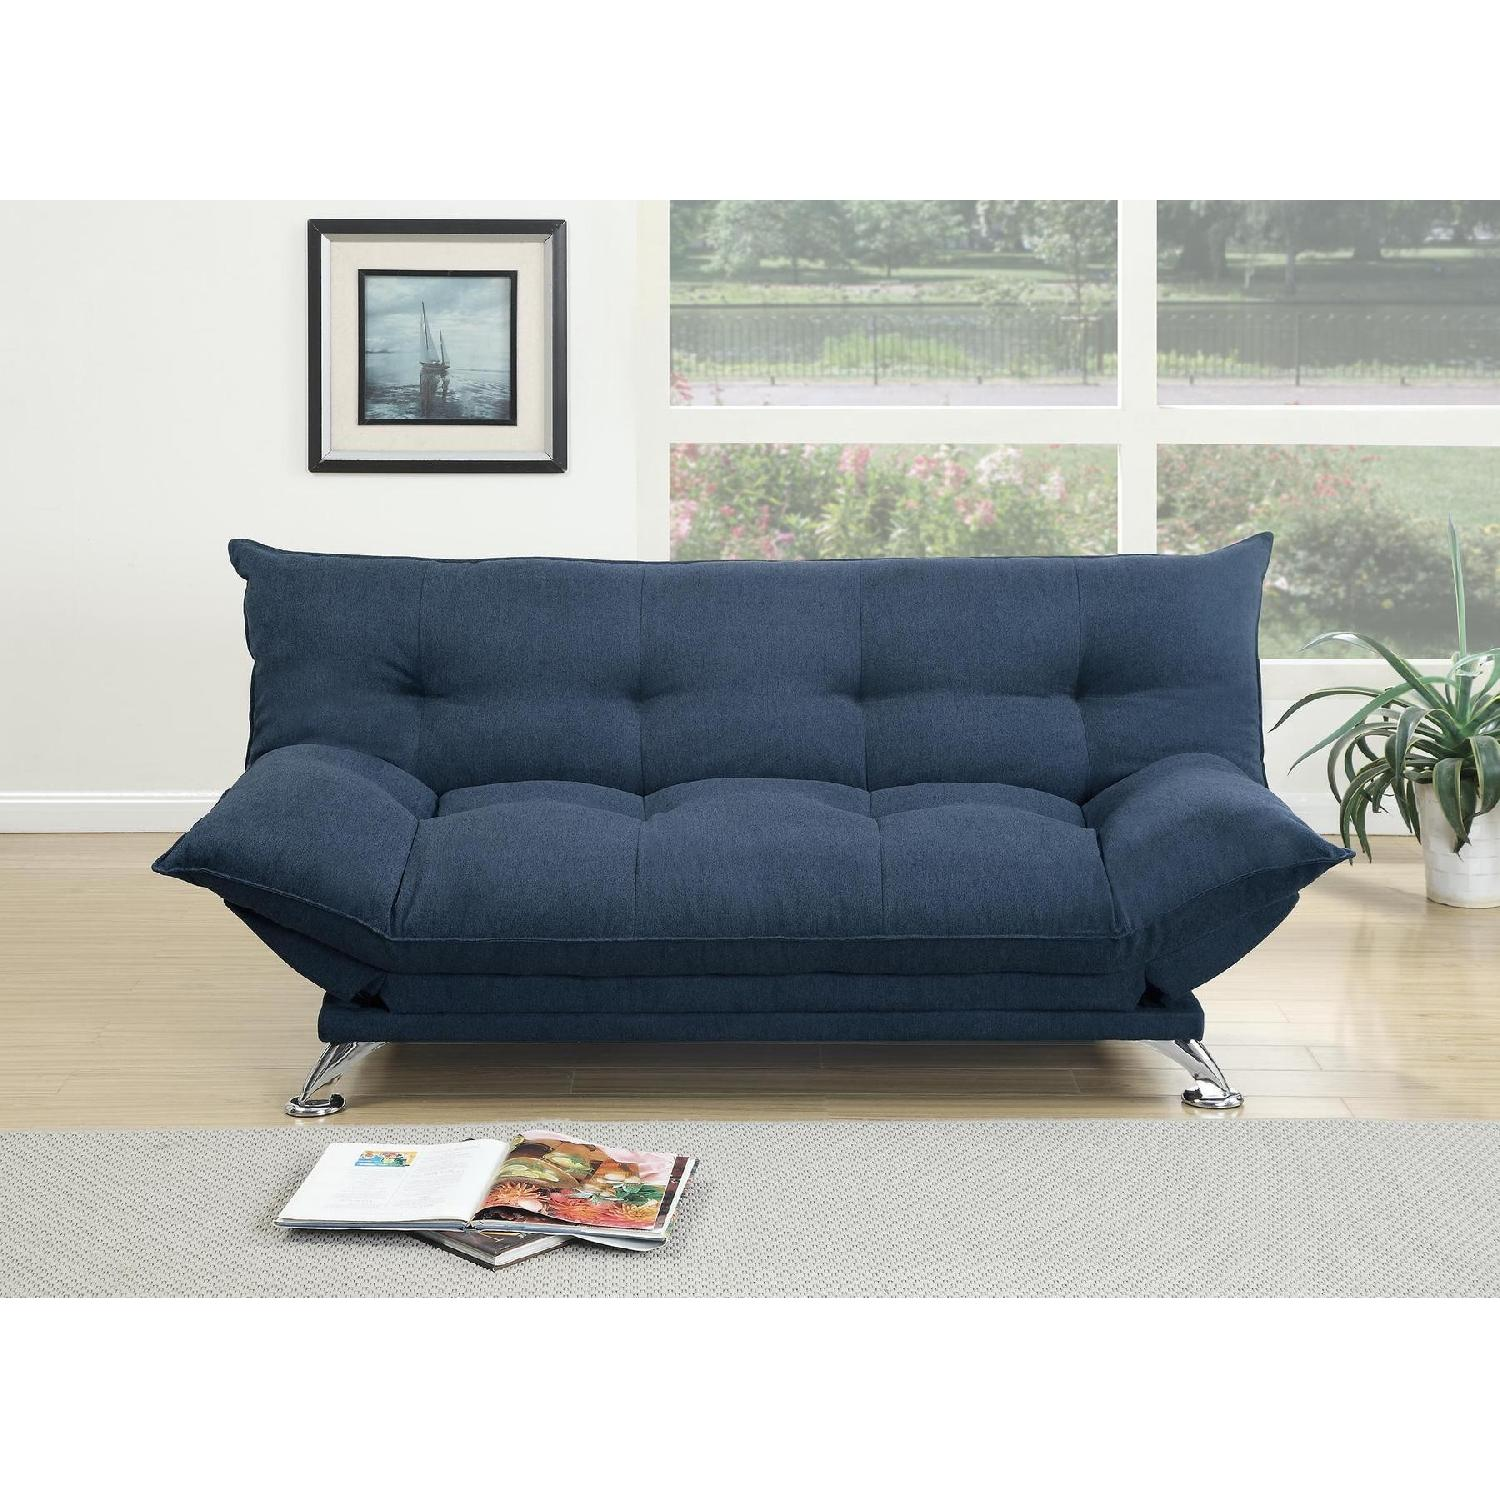 Navy Linen Like Fabric Sofa Bed - AptDeco